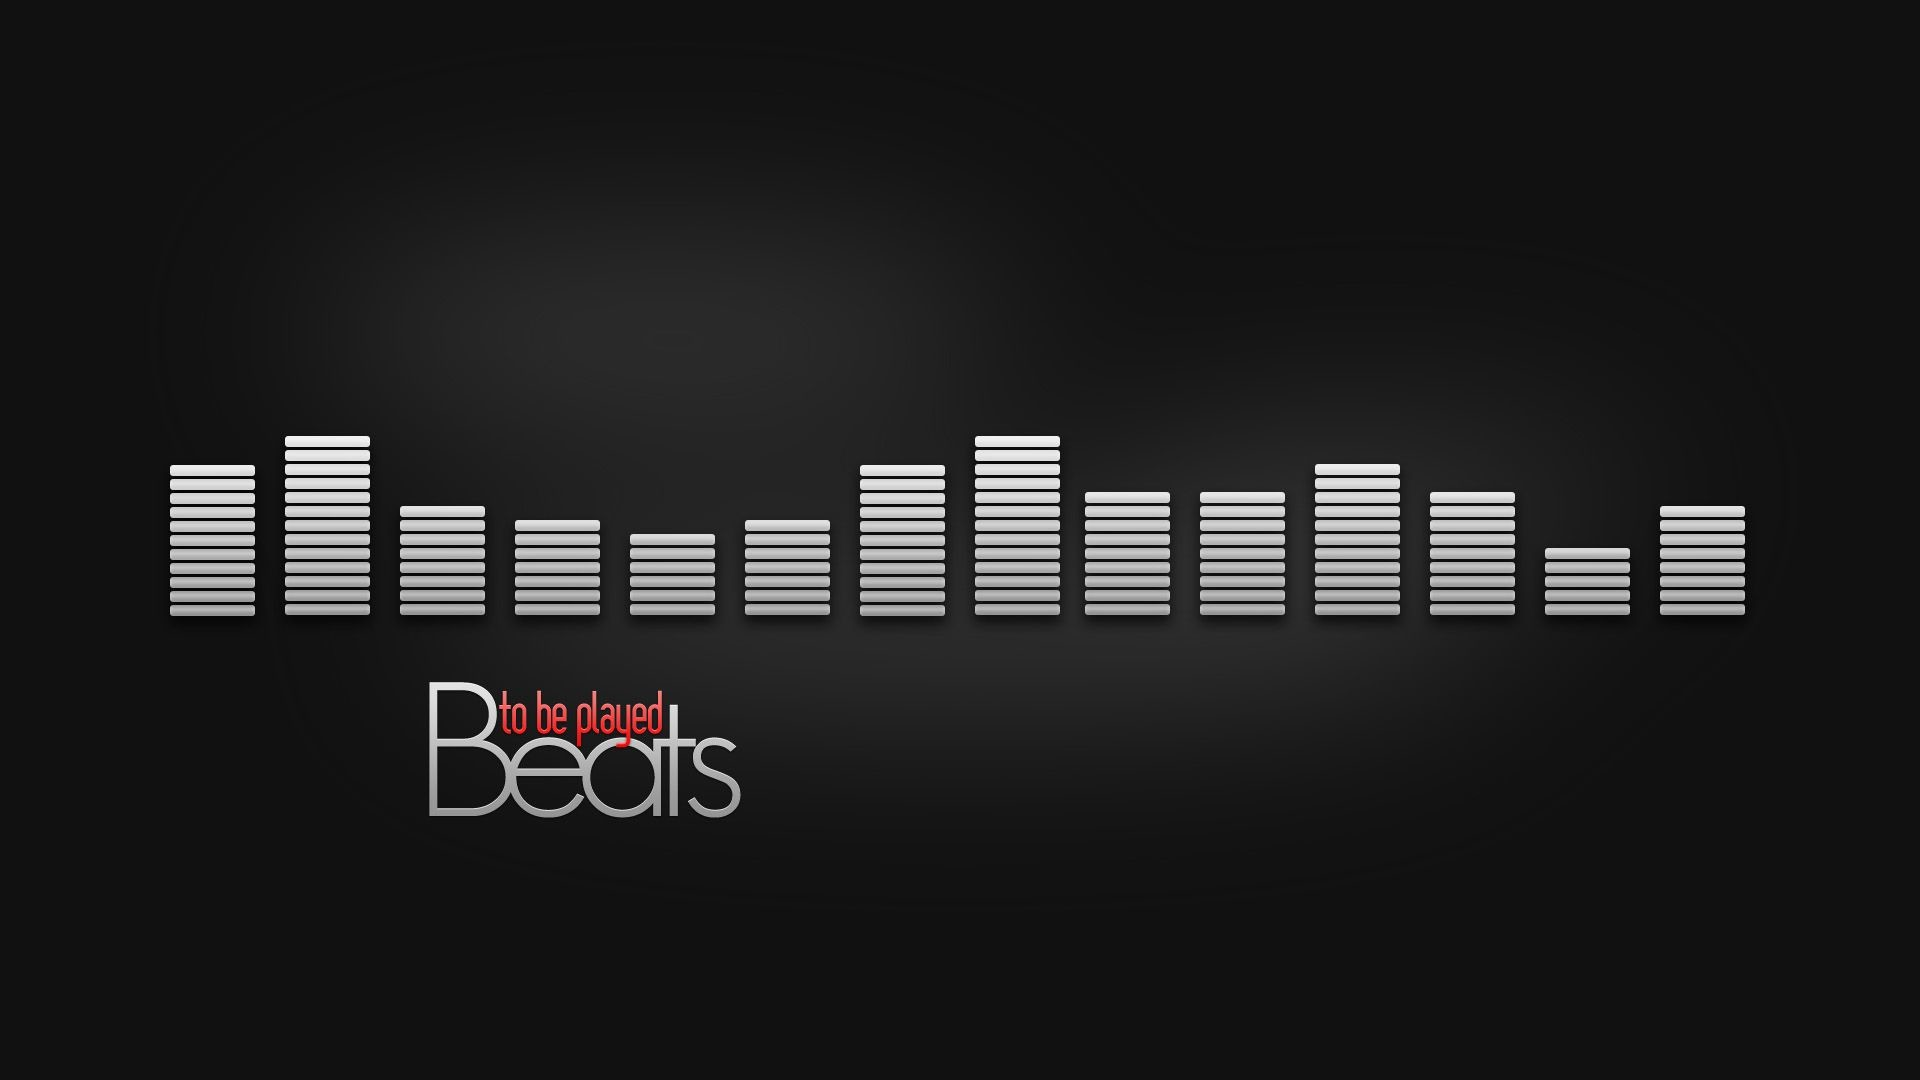 Producer Wallpapers HD Wallpapers Download Free Images Wallpaper [1000image.com]